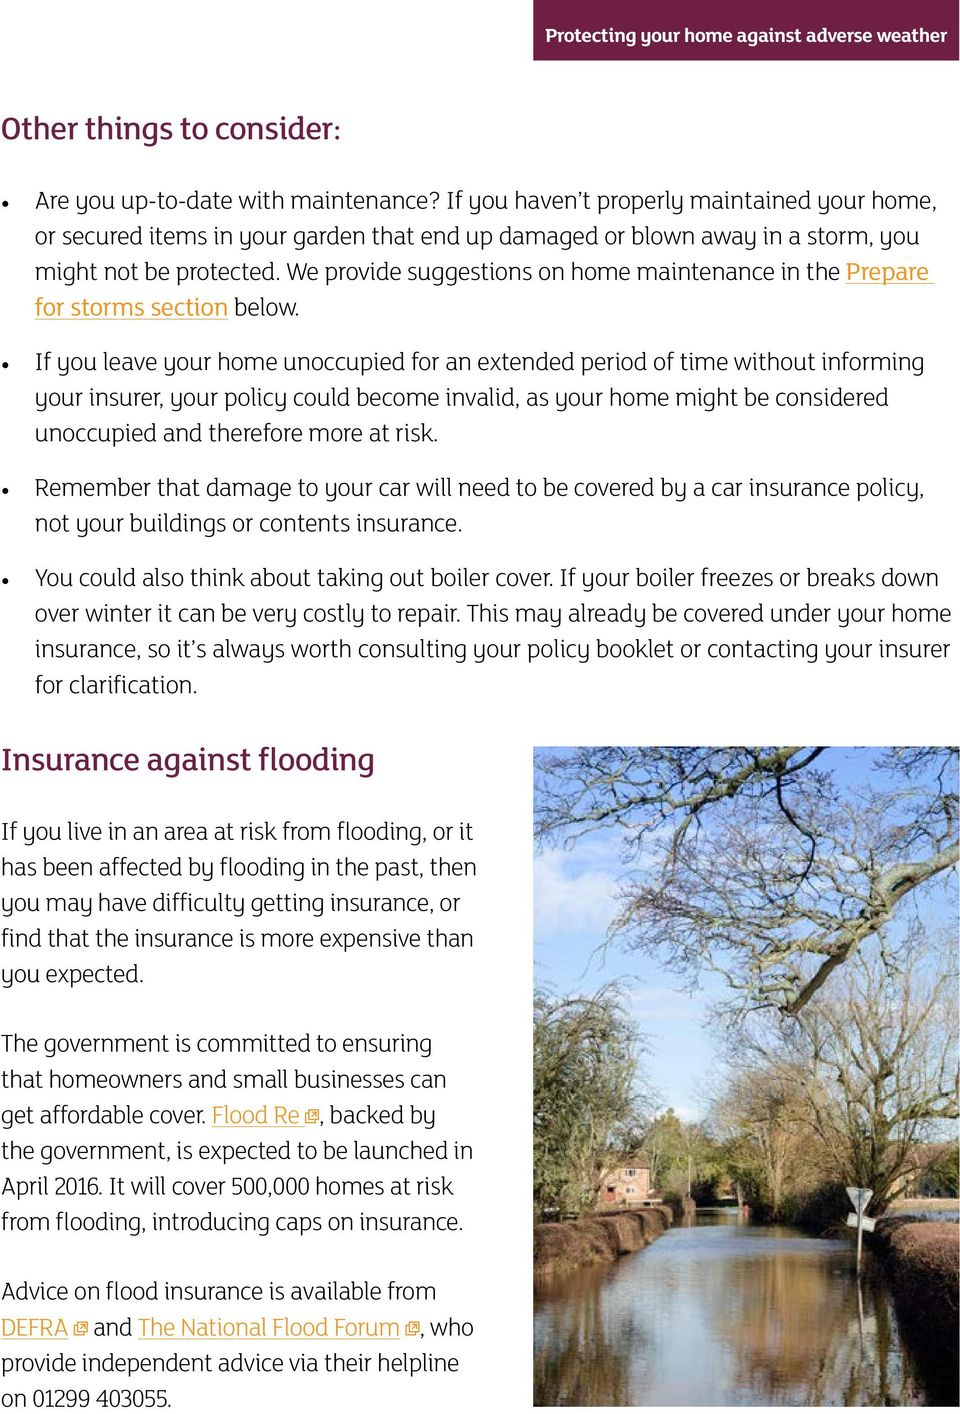 We provide suggestions on home maintenance in the Prepare for storms section below.